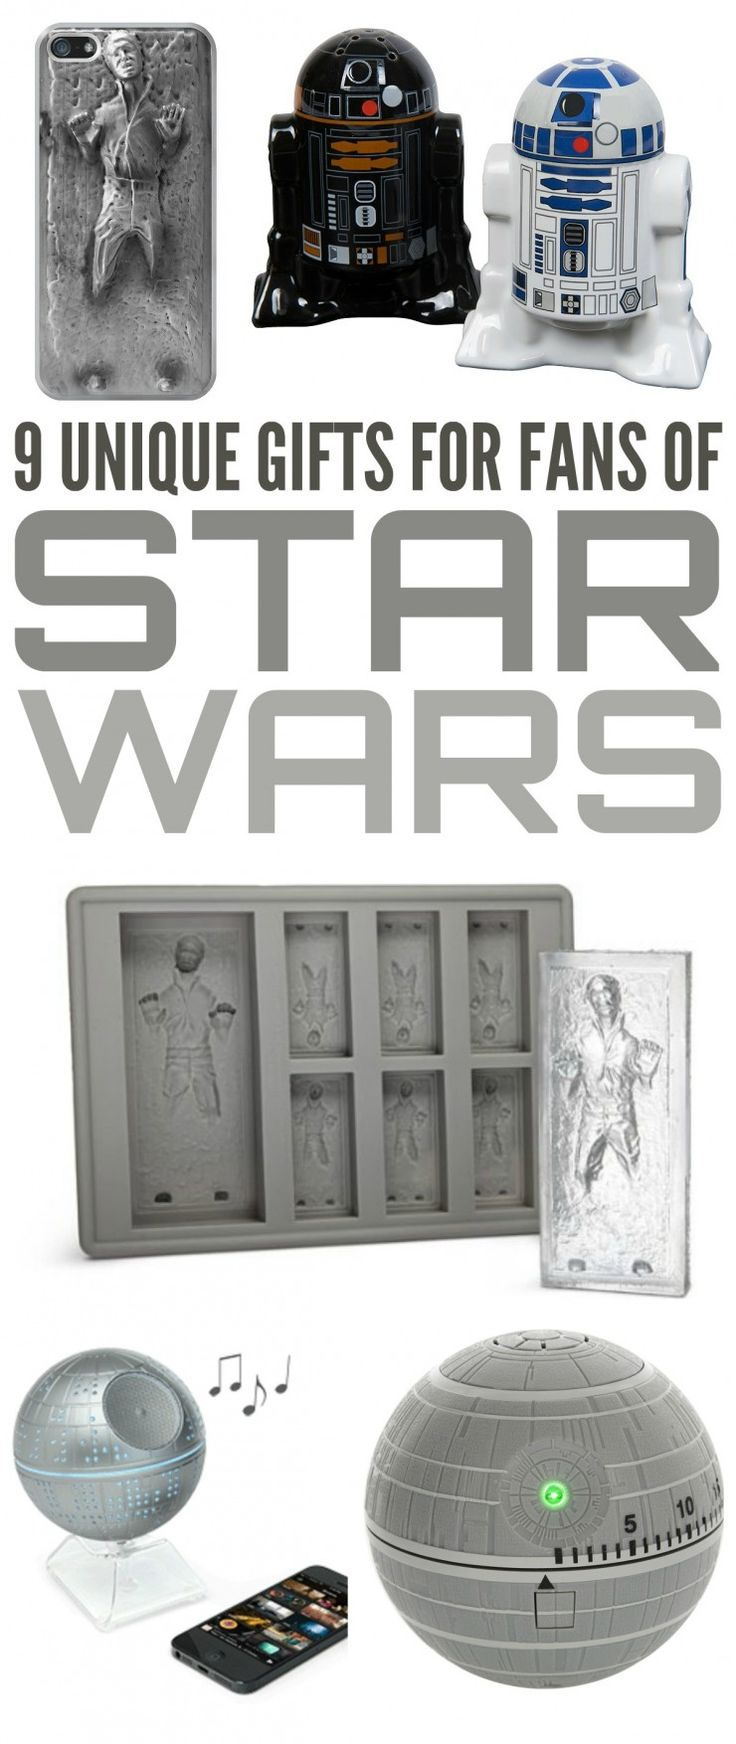 Check out this curated collection of some of the most unique gifts for fans of Star Wars you can find to help you start shopping for the perfect gift for the ultimate Star Wars fan in your life.